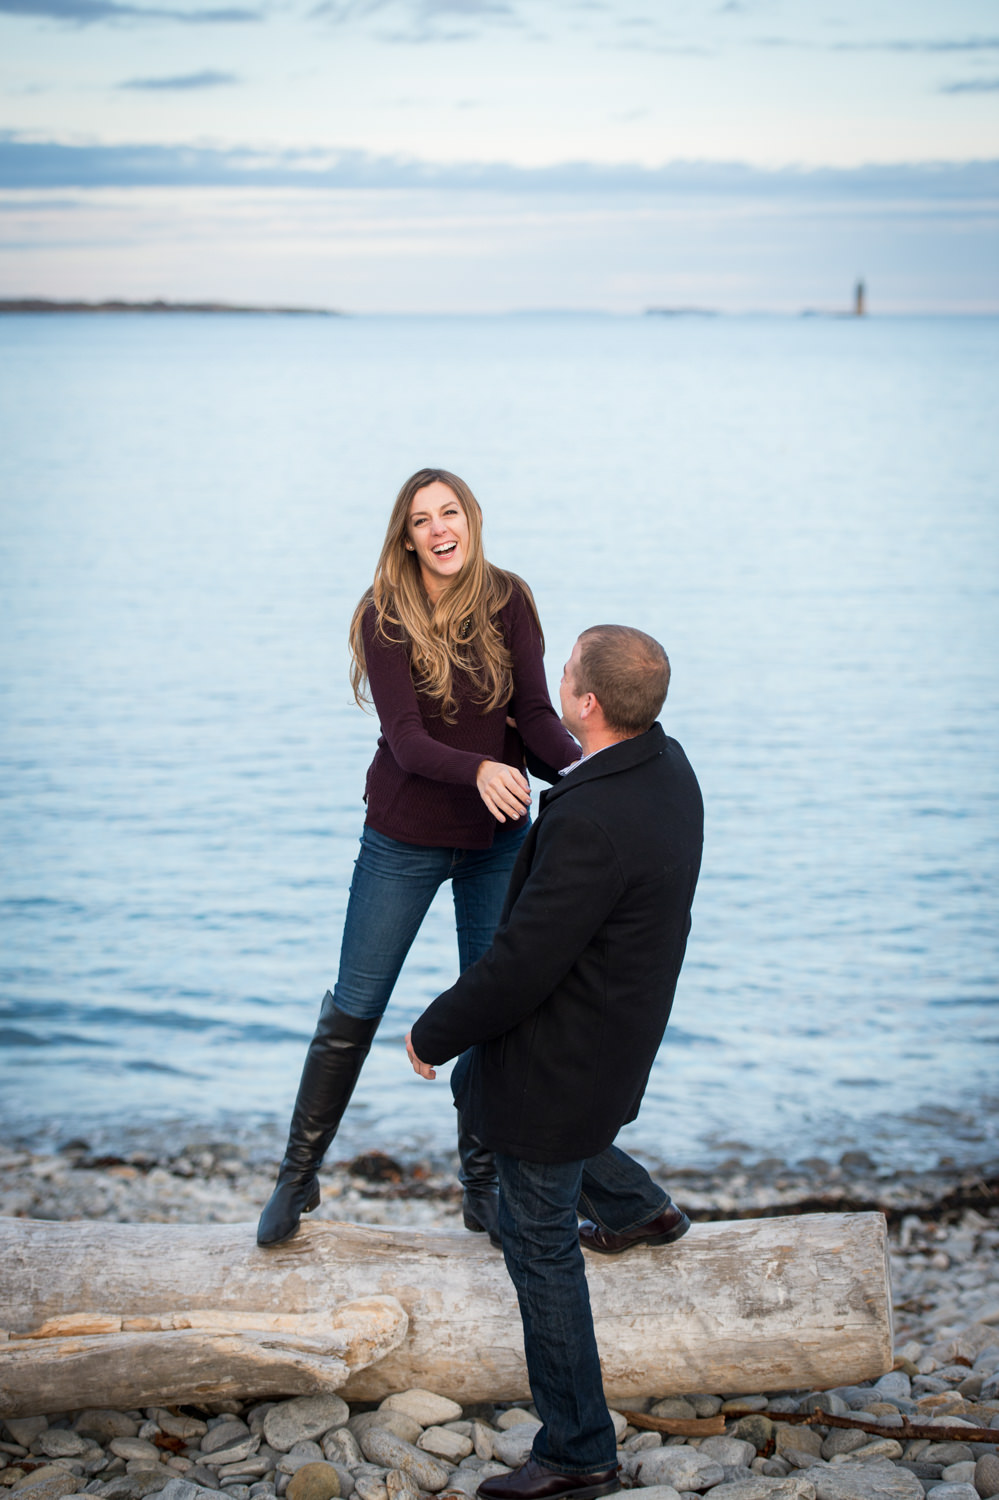 Maine and Destination Wedding Photographer - Engagement Session-11.jpg